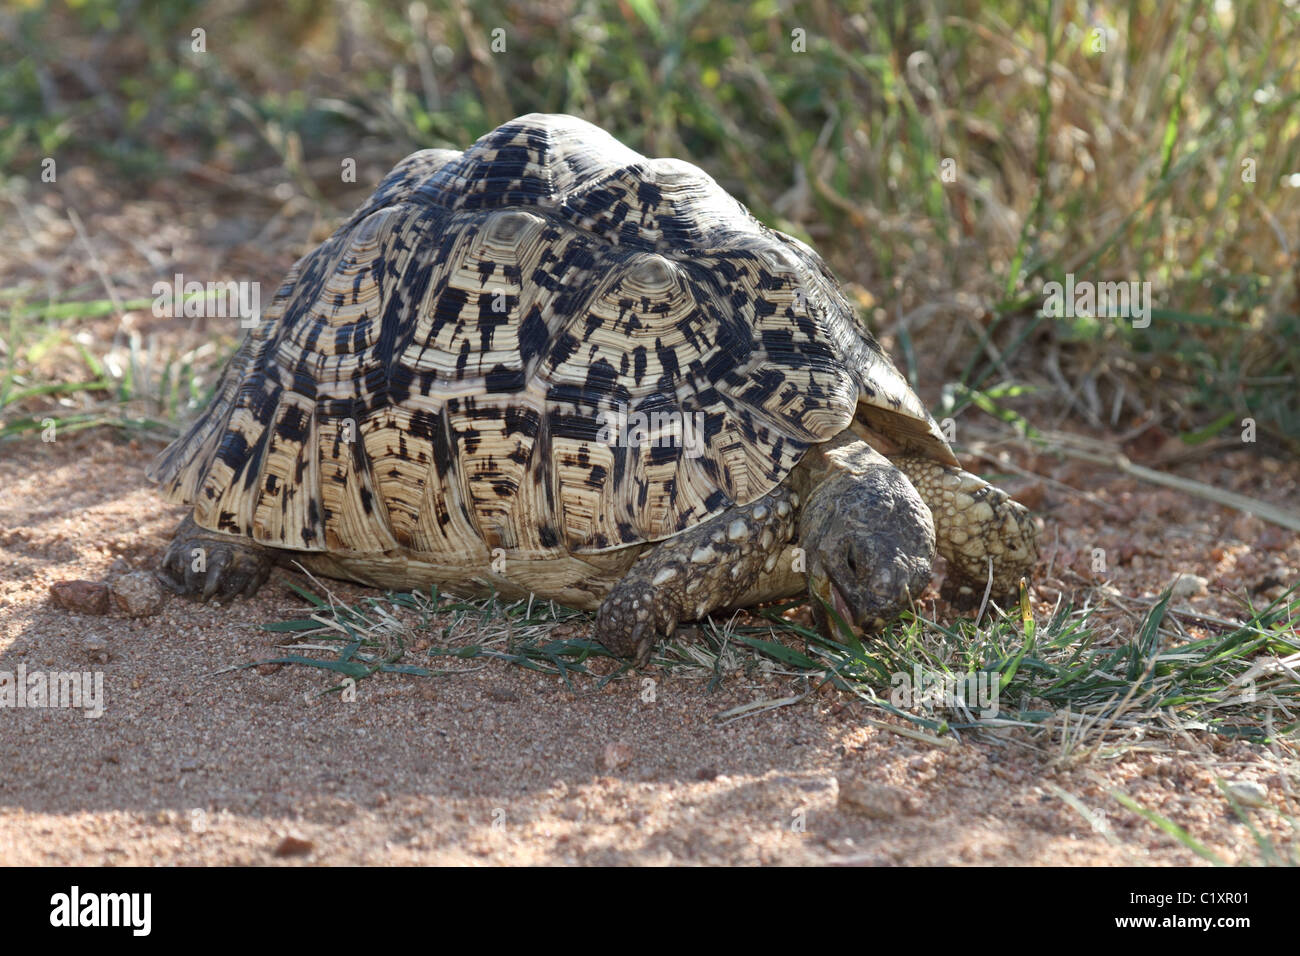 African spur tortoise eating - Stock Image